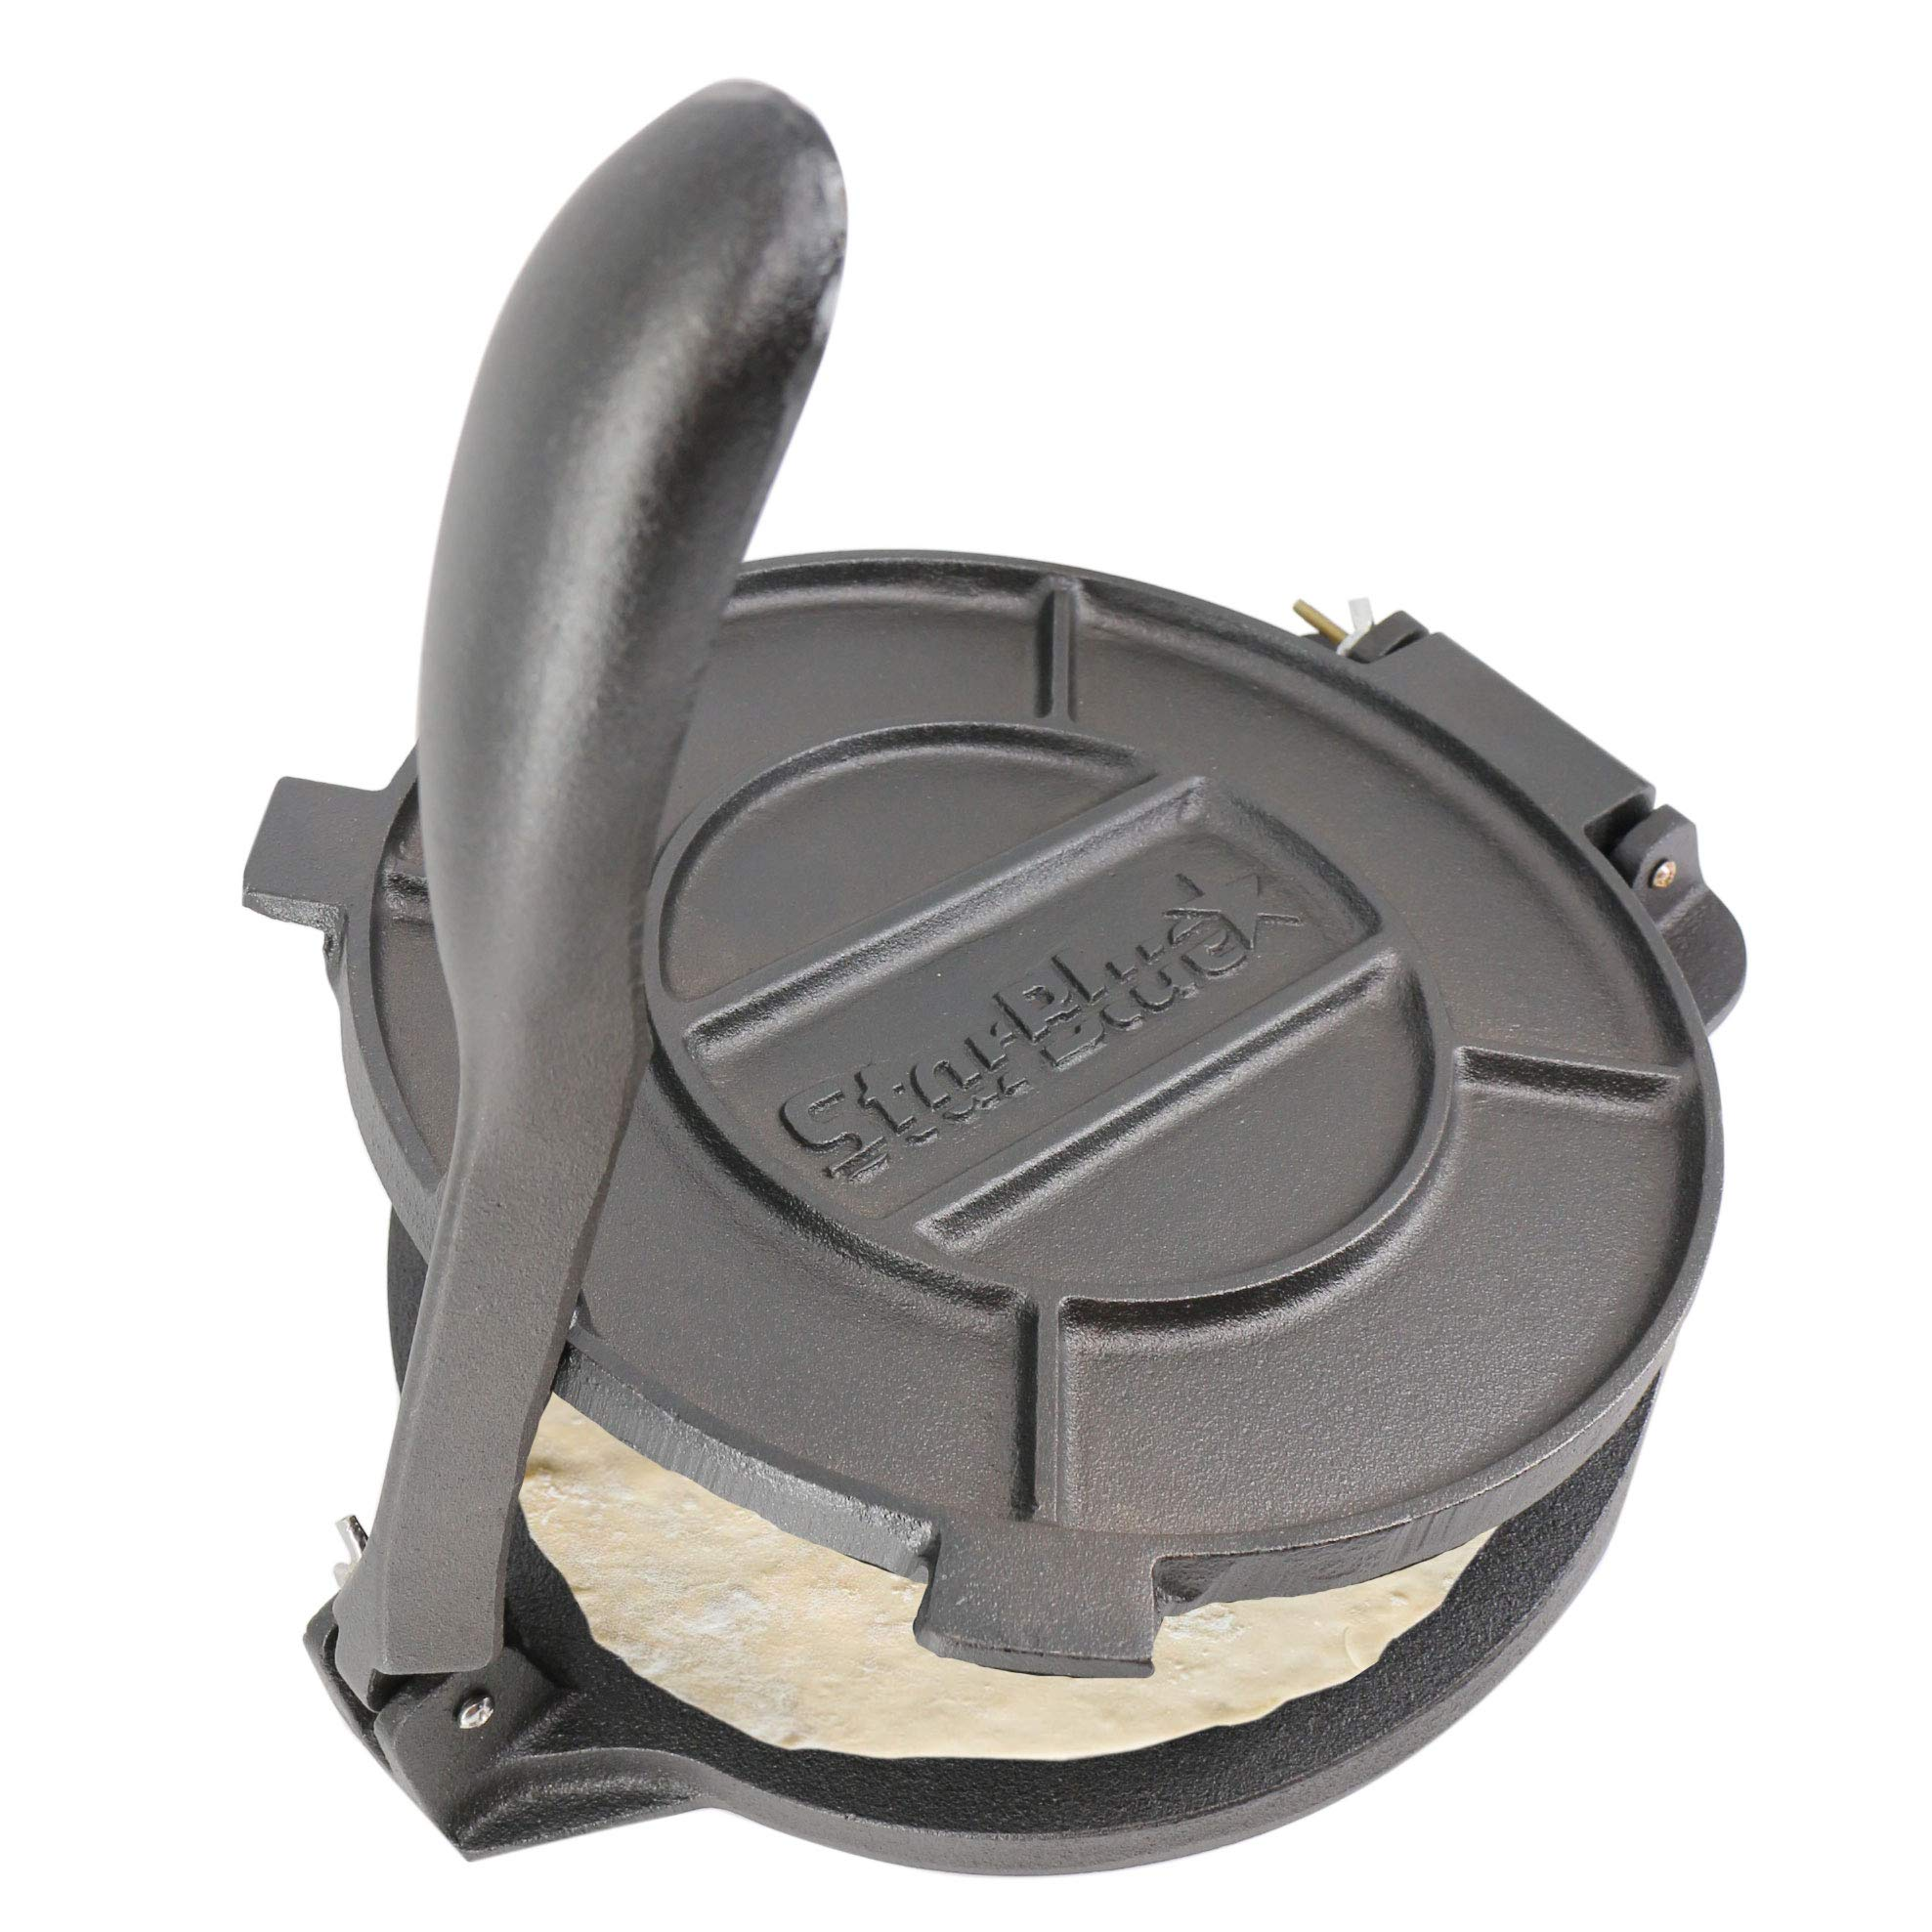 10 Inch Cast Iron Tortilla Press by StarBlue with FREE 100 Pieces Oil Paper by StarBlue